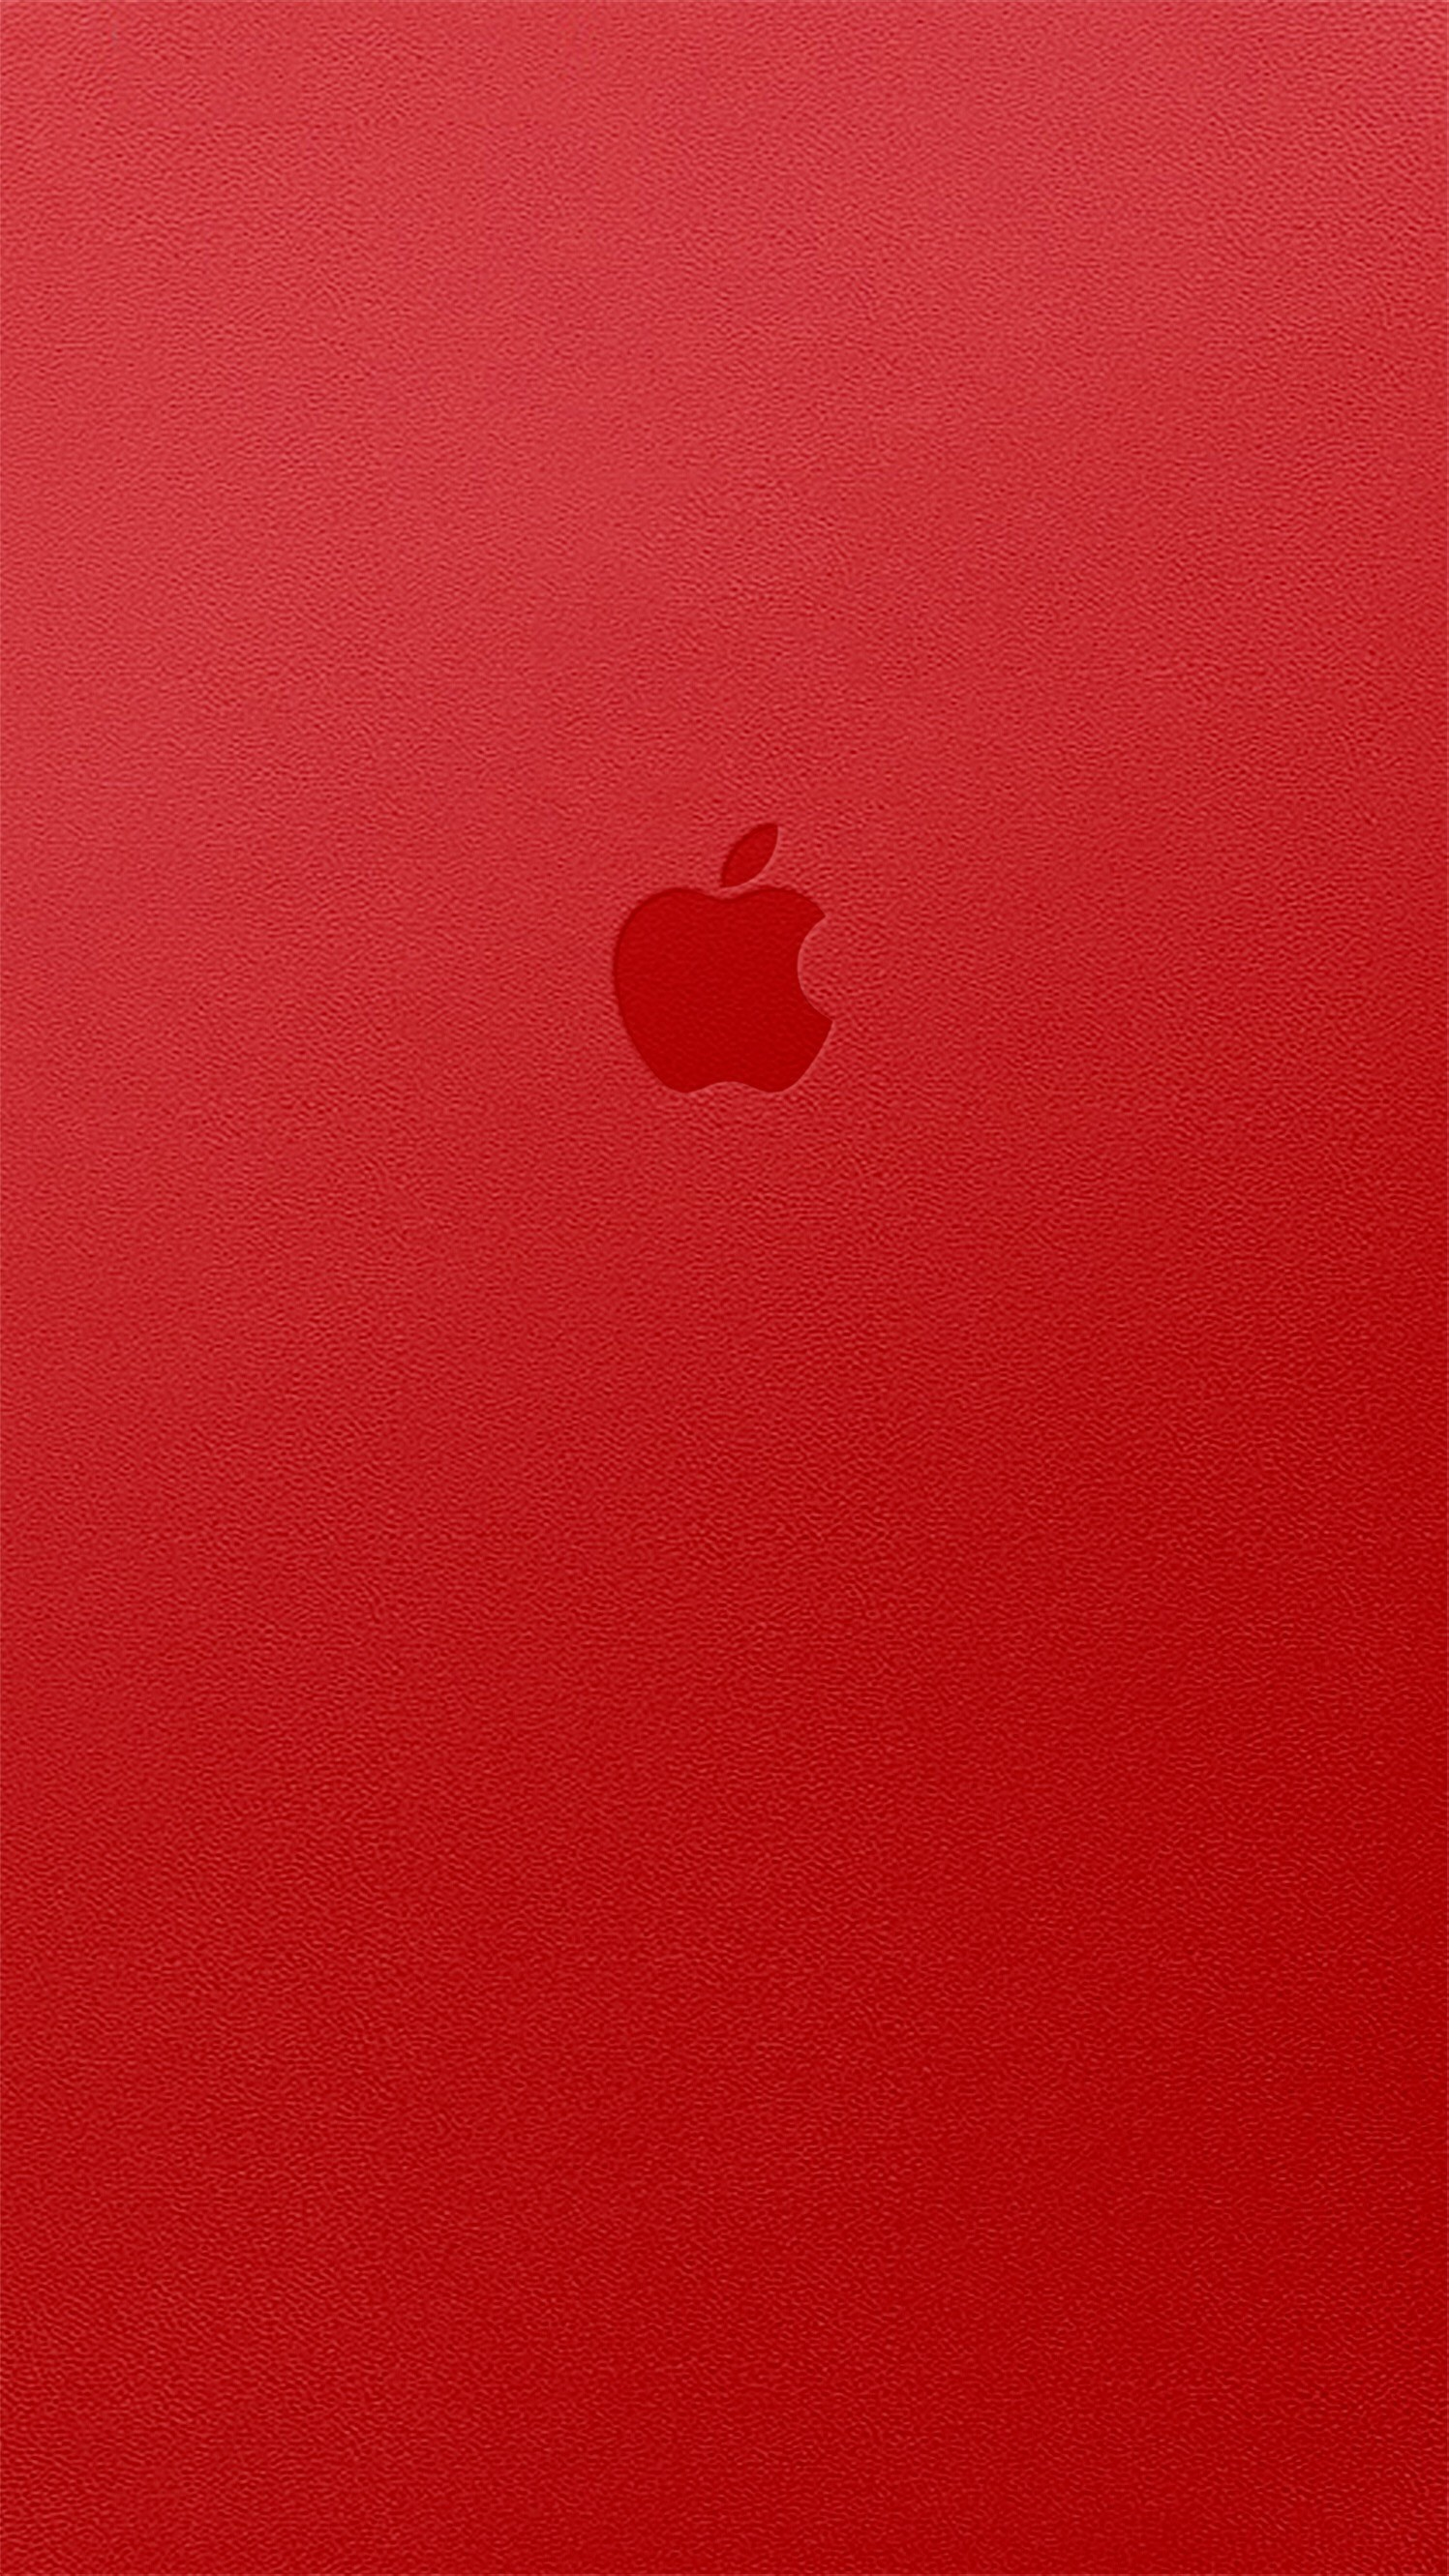 Free Download Red Apple Wallpapers 70 Images 1497x2662 For